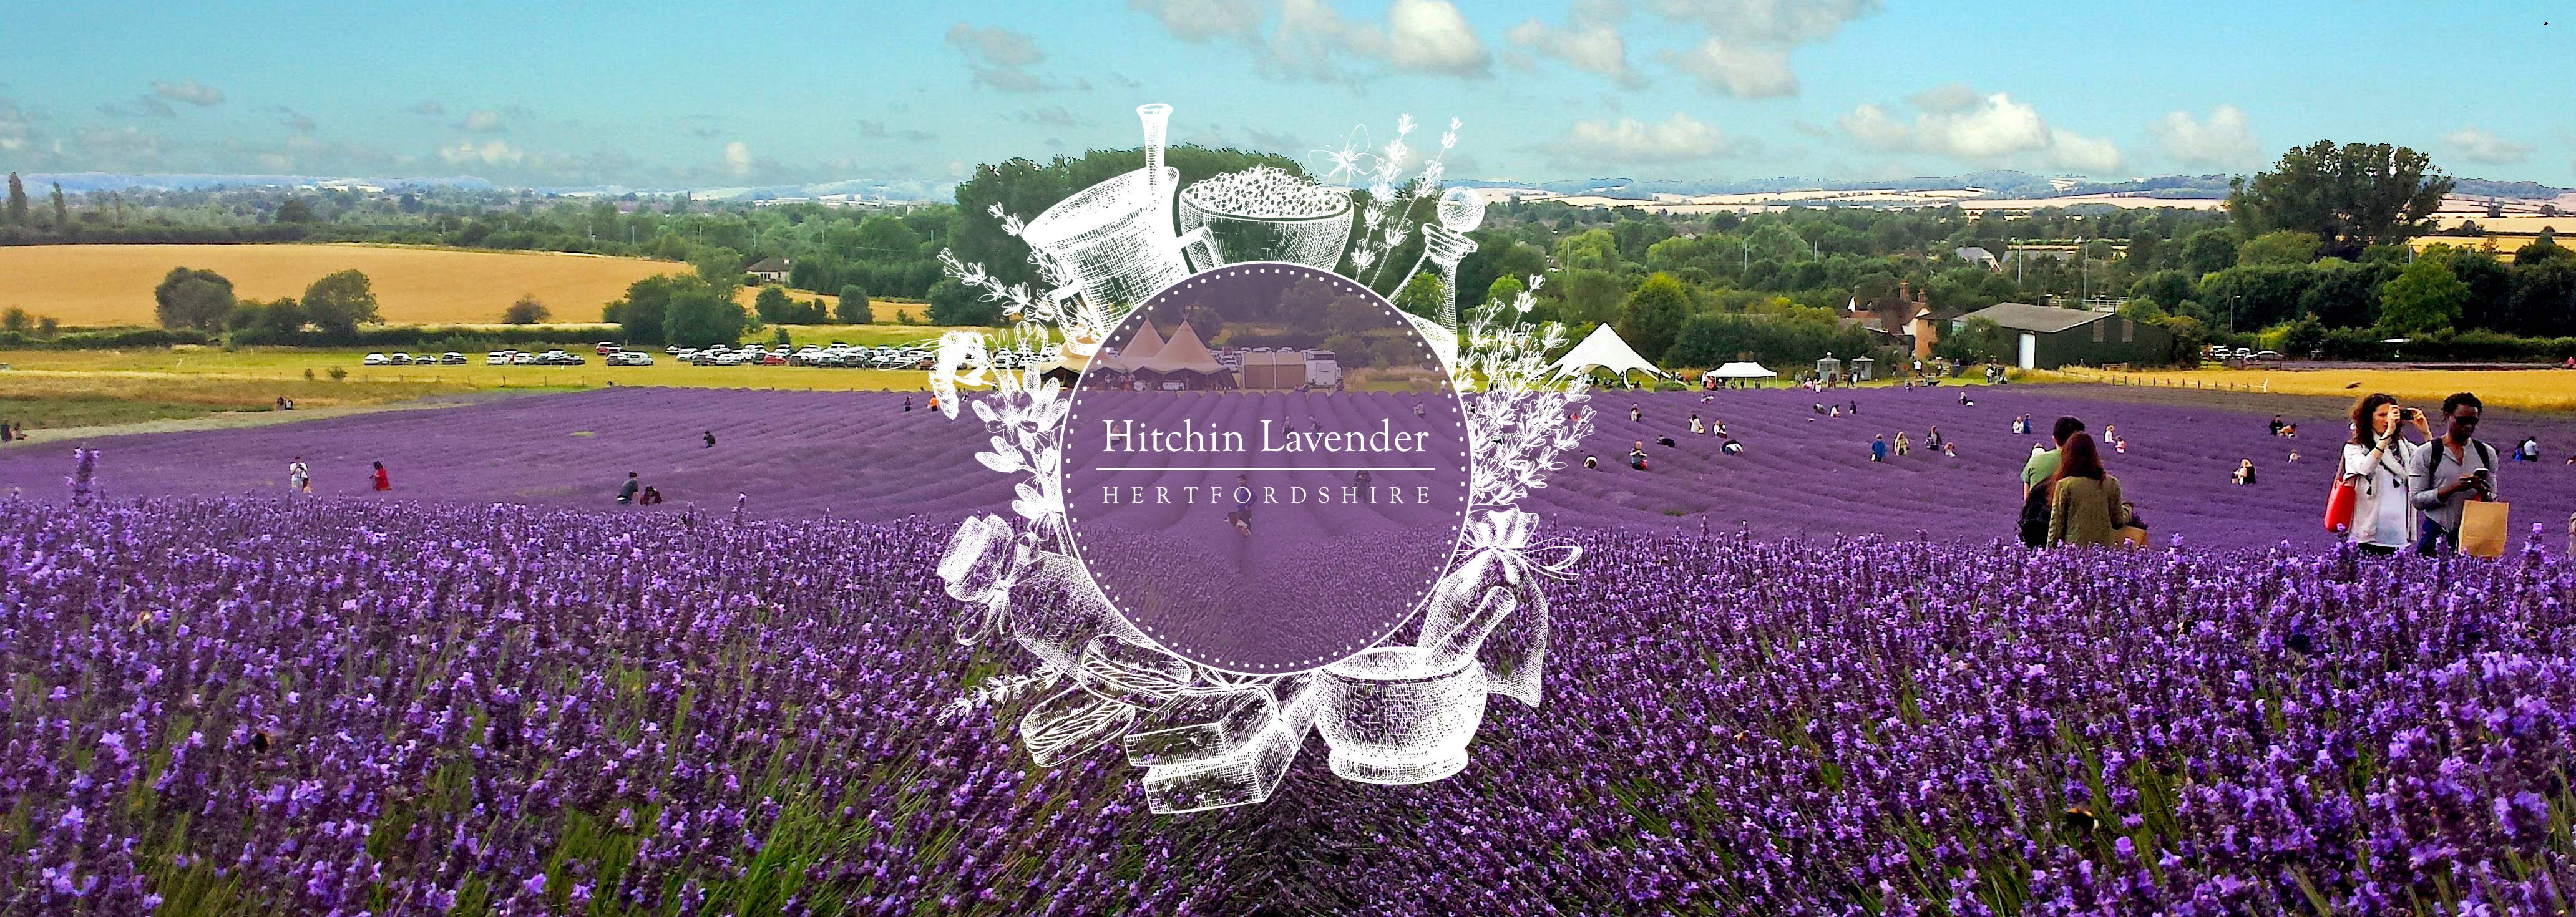 Hitchin Lavender Blog